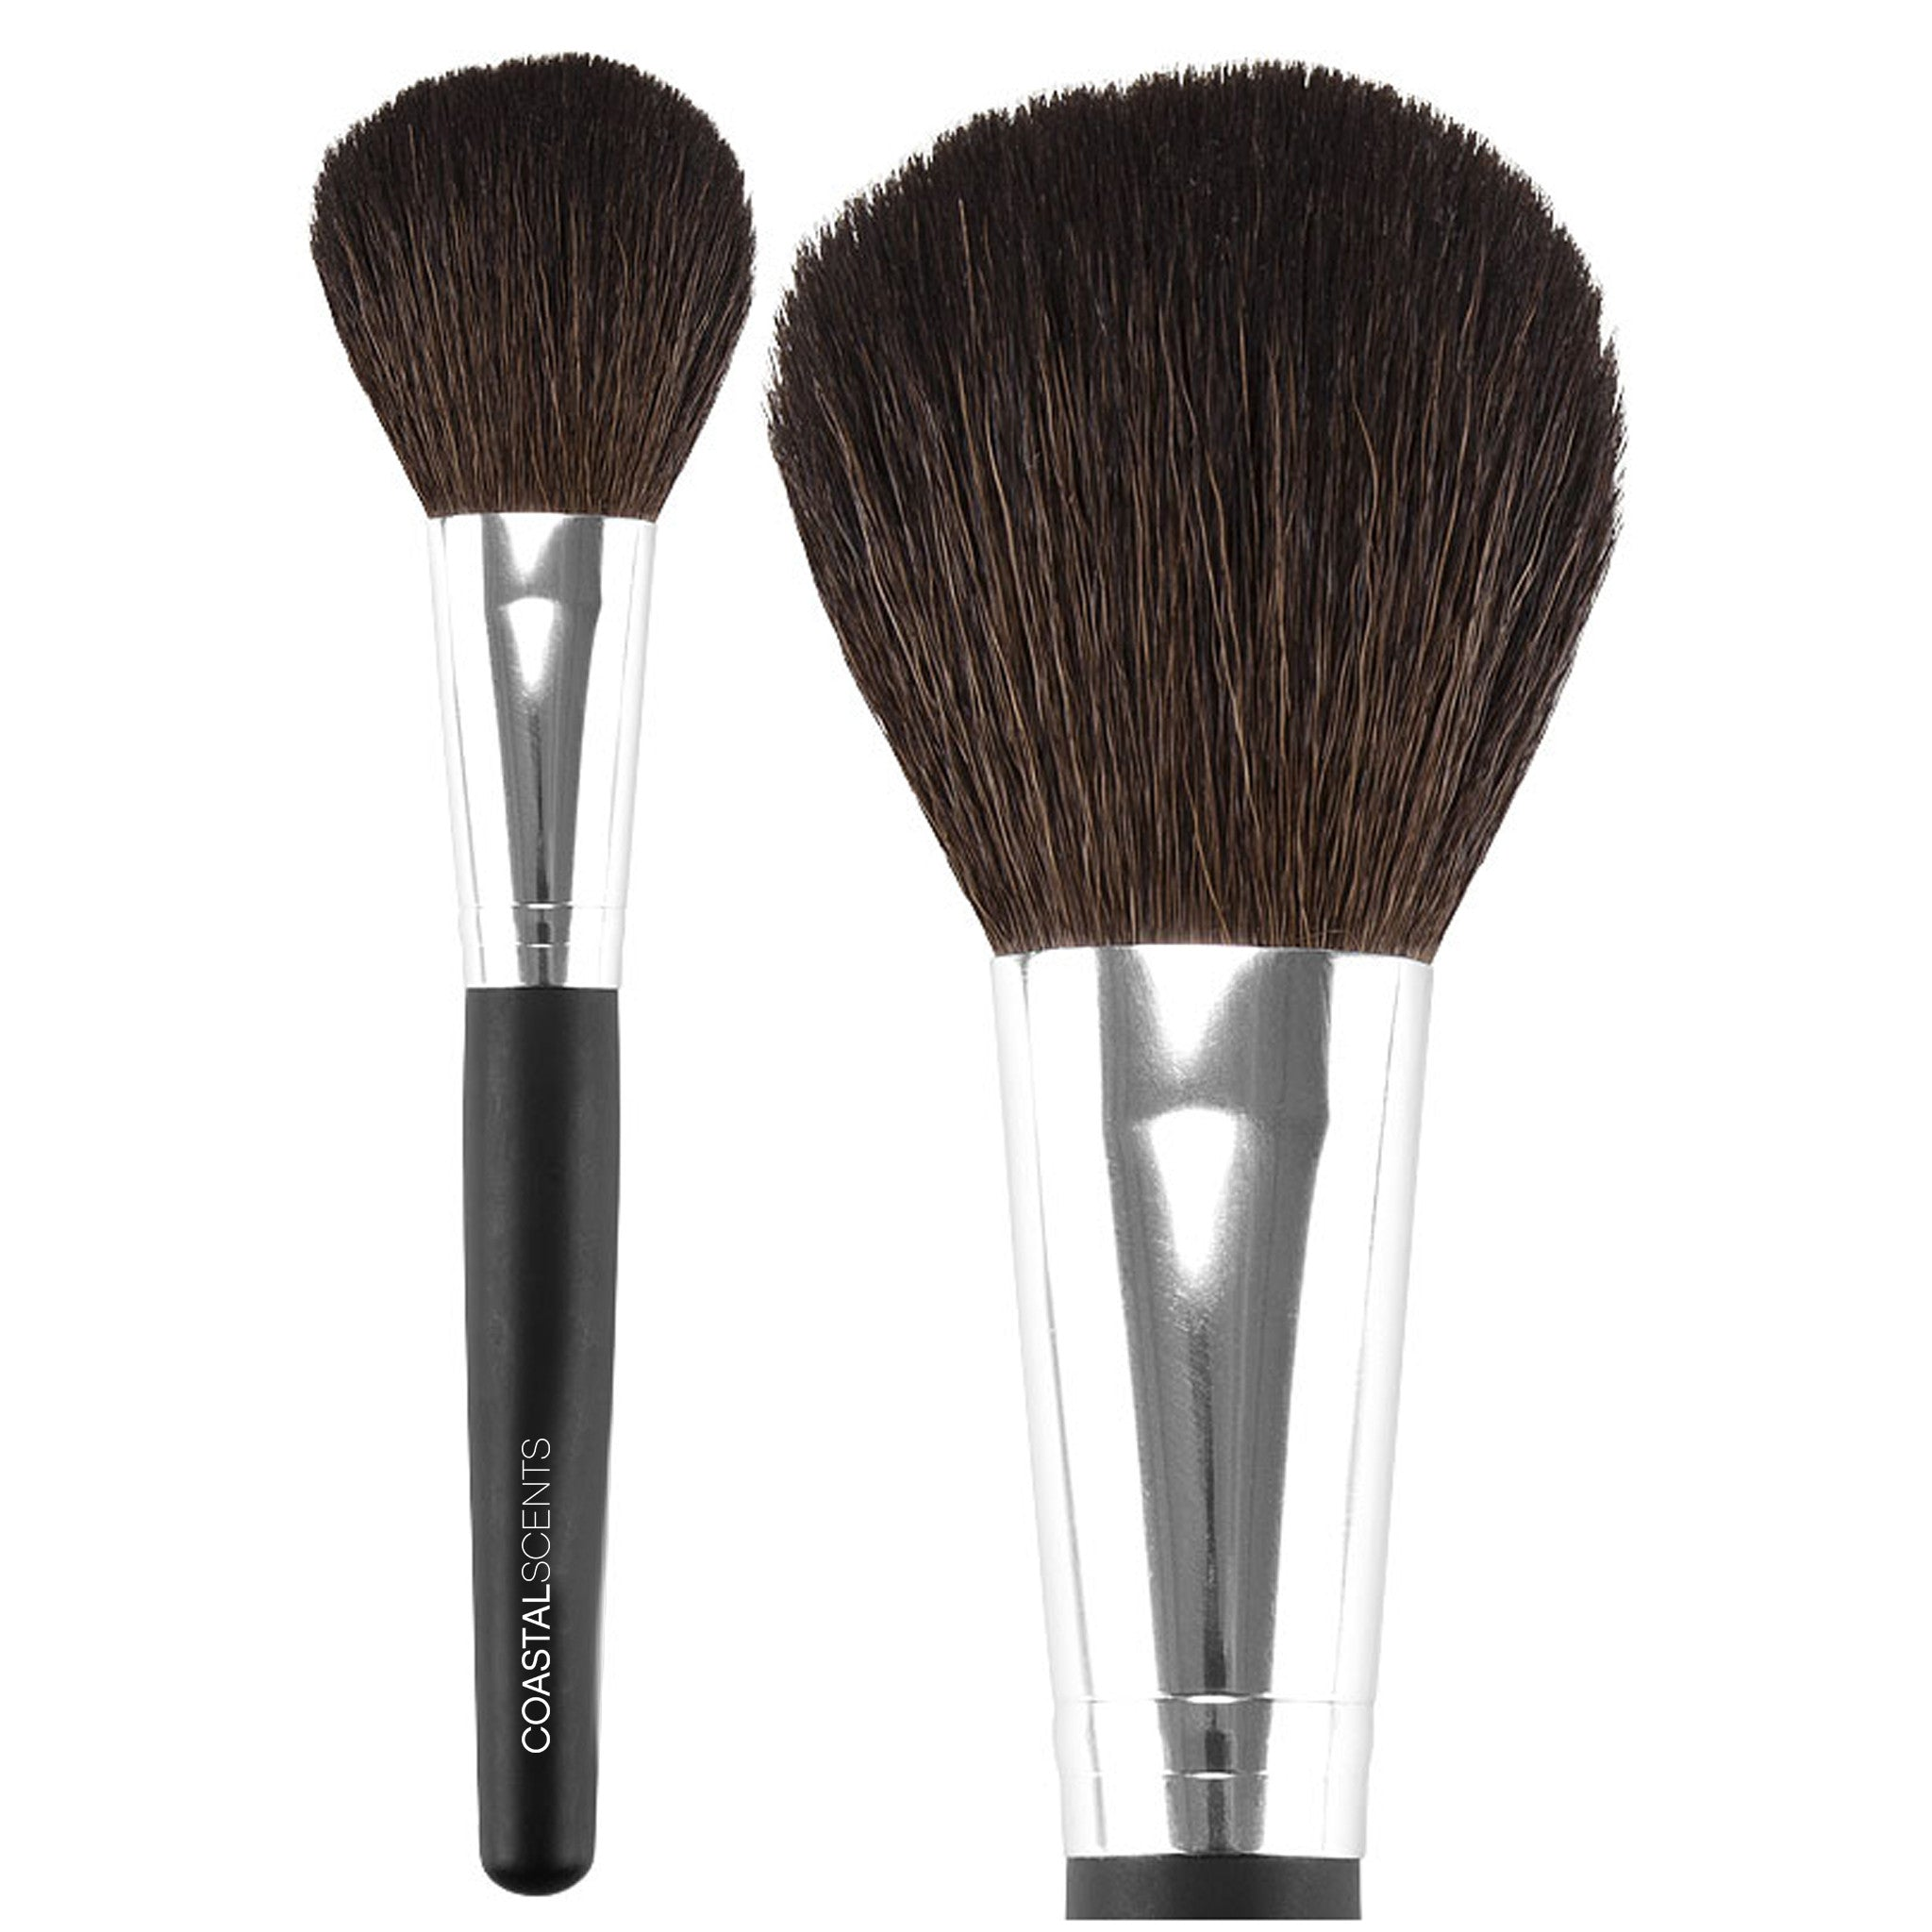 Coastal Scents coupon: Classic Flat Powder Brush Natural